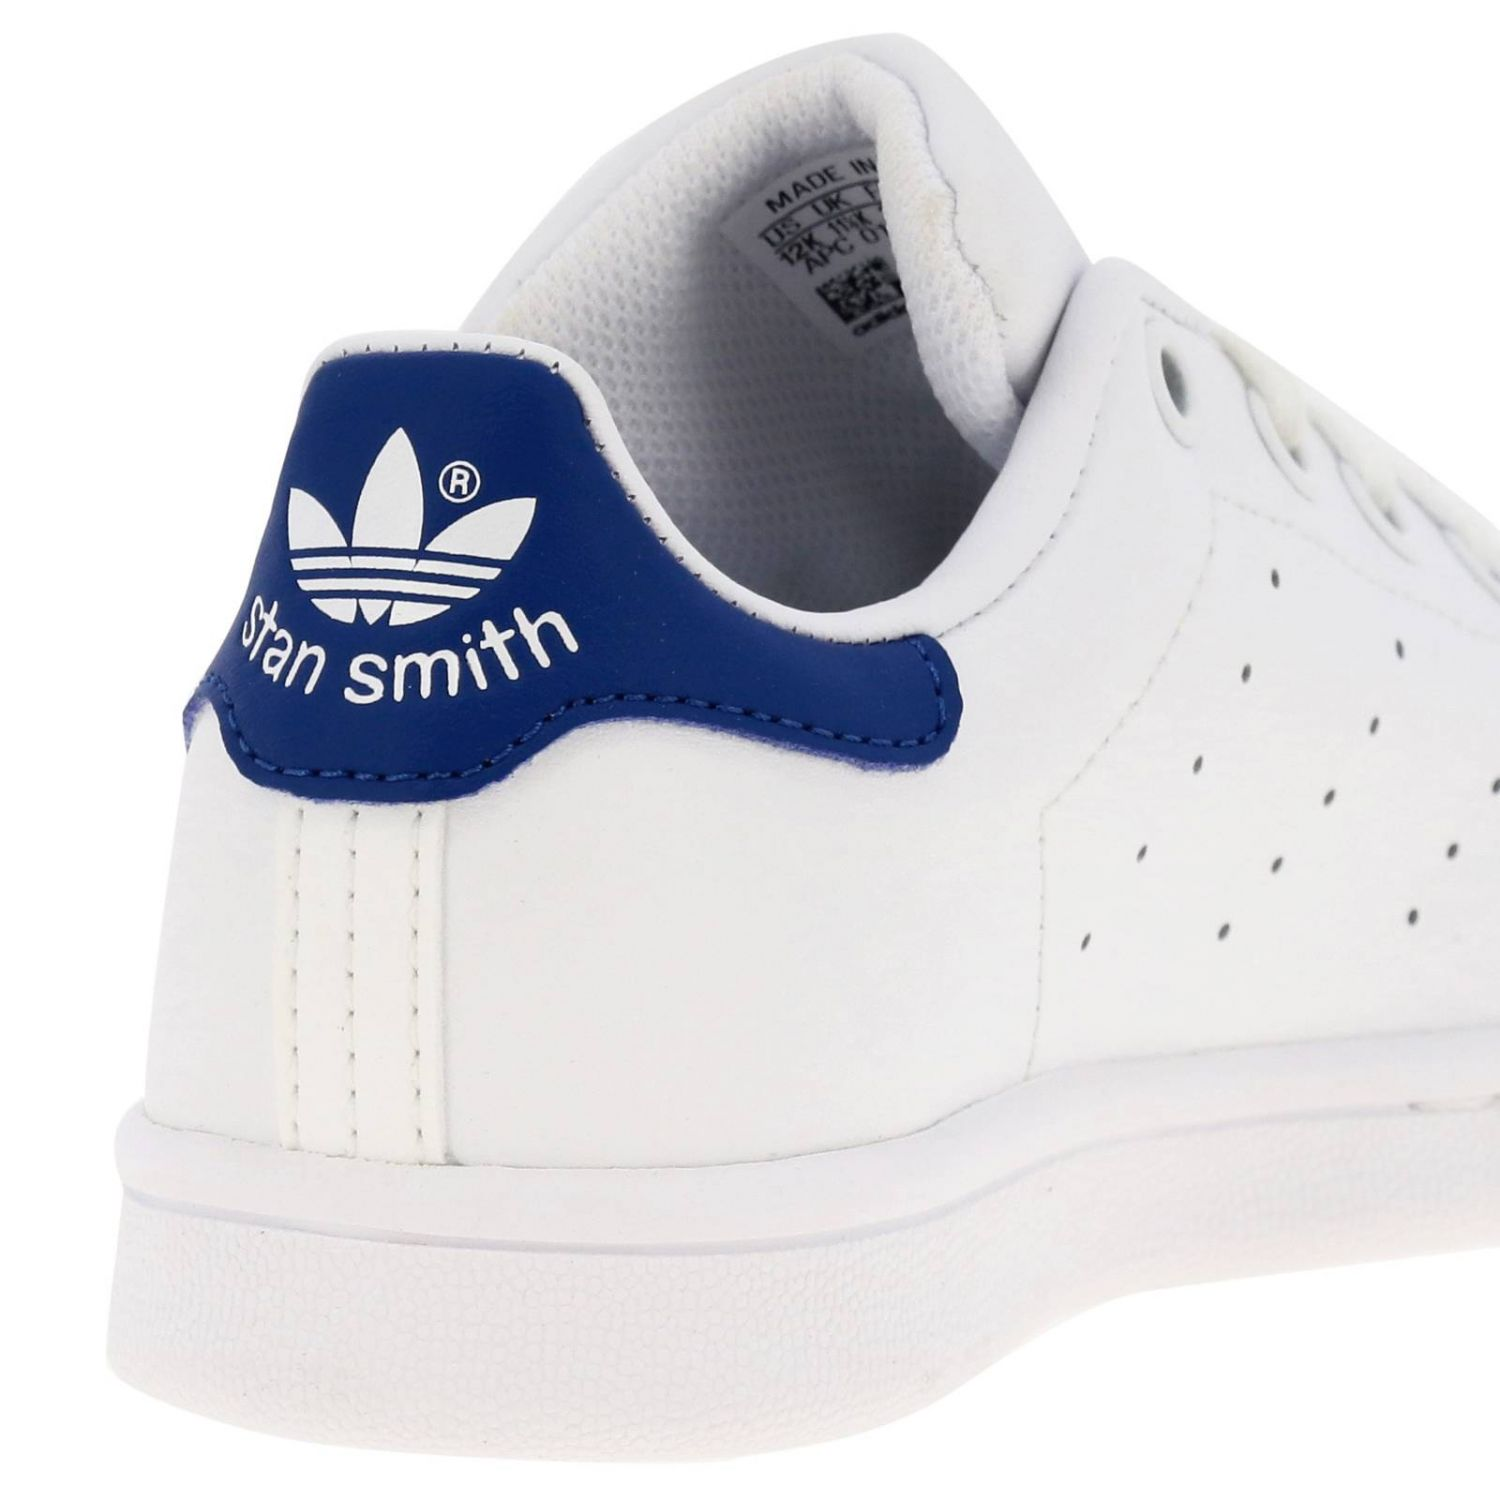 Shoes Adidas Originals: Stan Smith C Adidas Originals Sneakers in leather with contrasting heel white 4